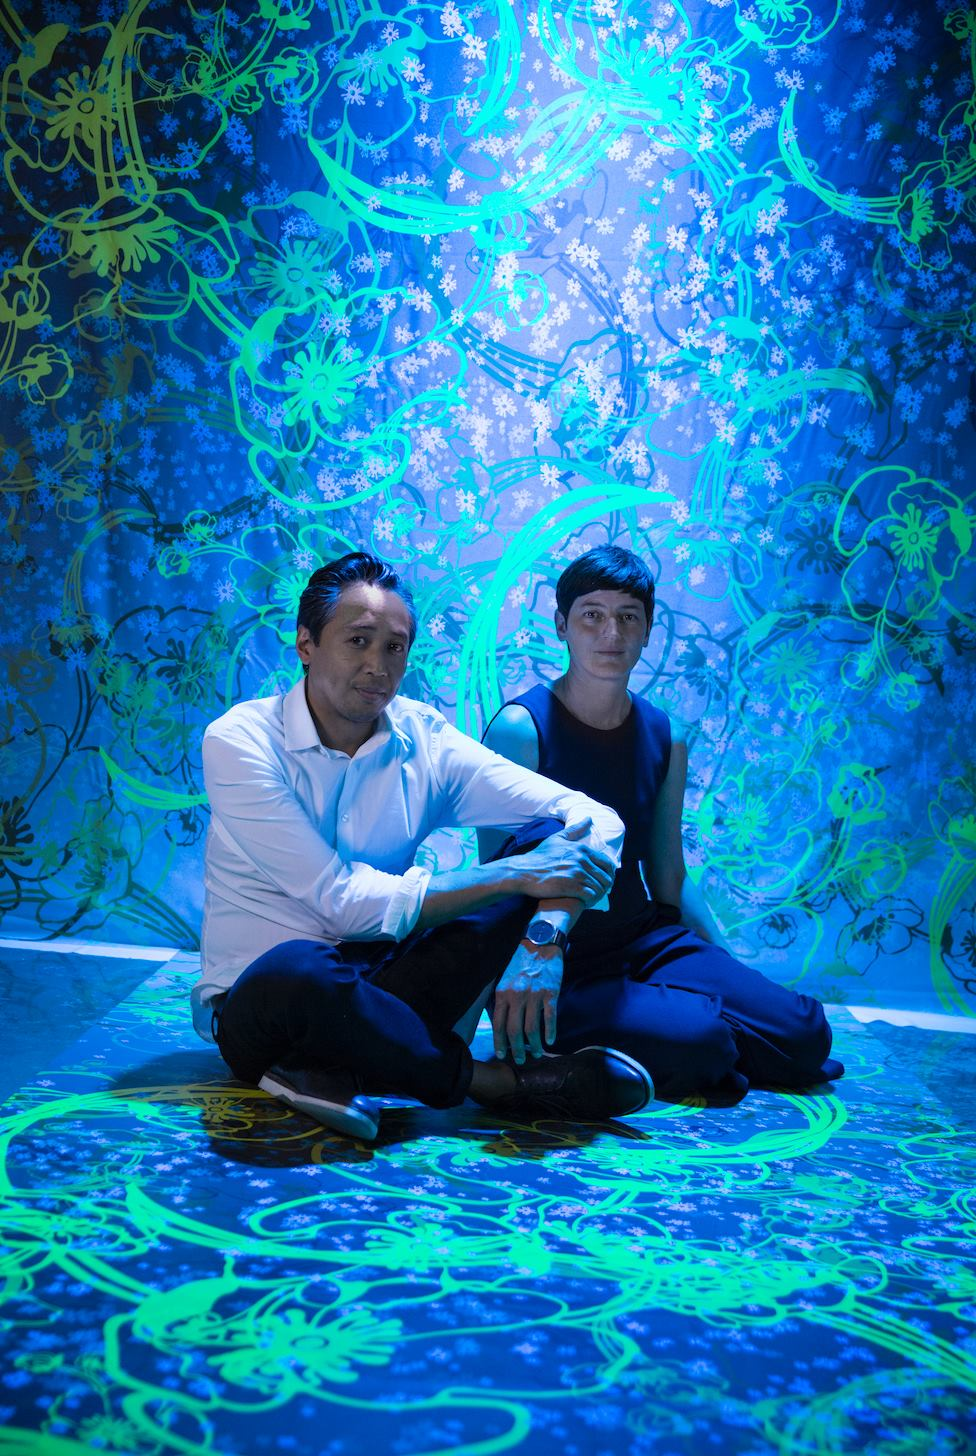 Image:  From Design Miami's Facebook page: Perrier-Jouët digital installation series